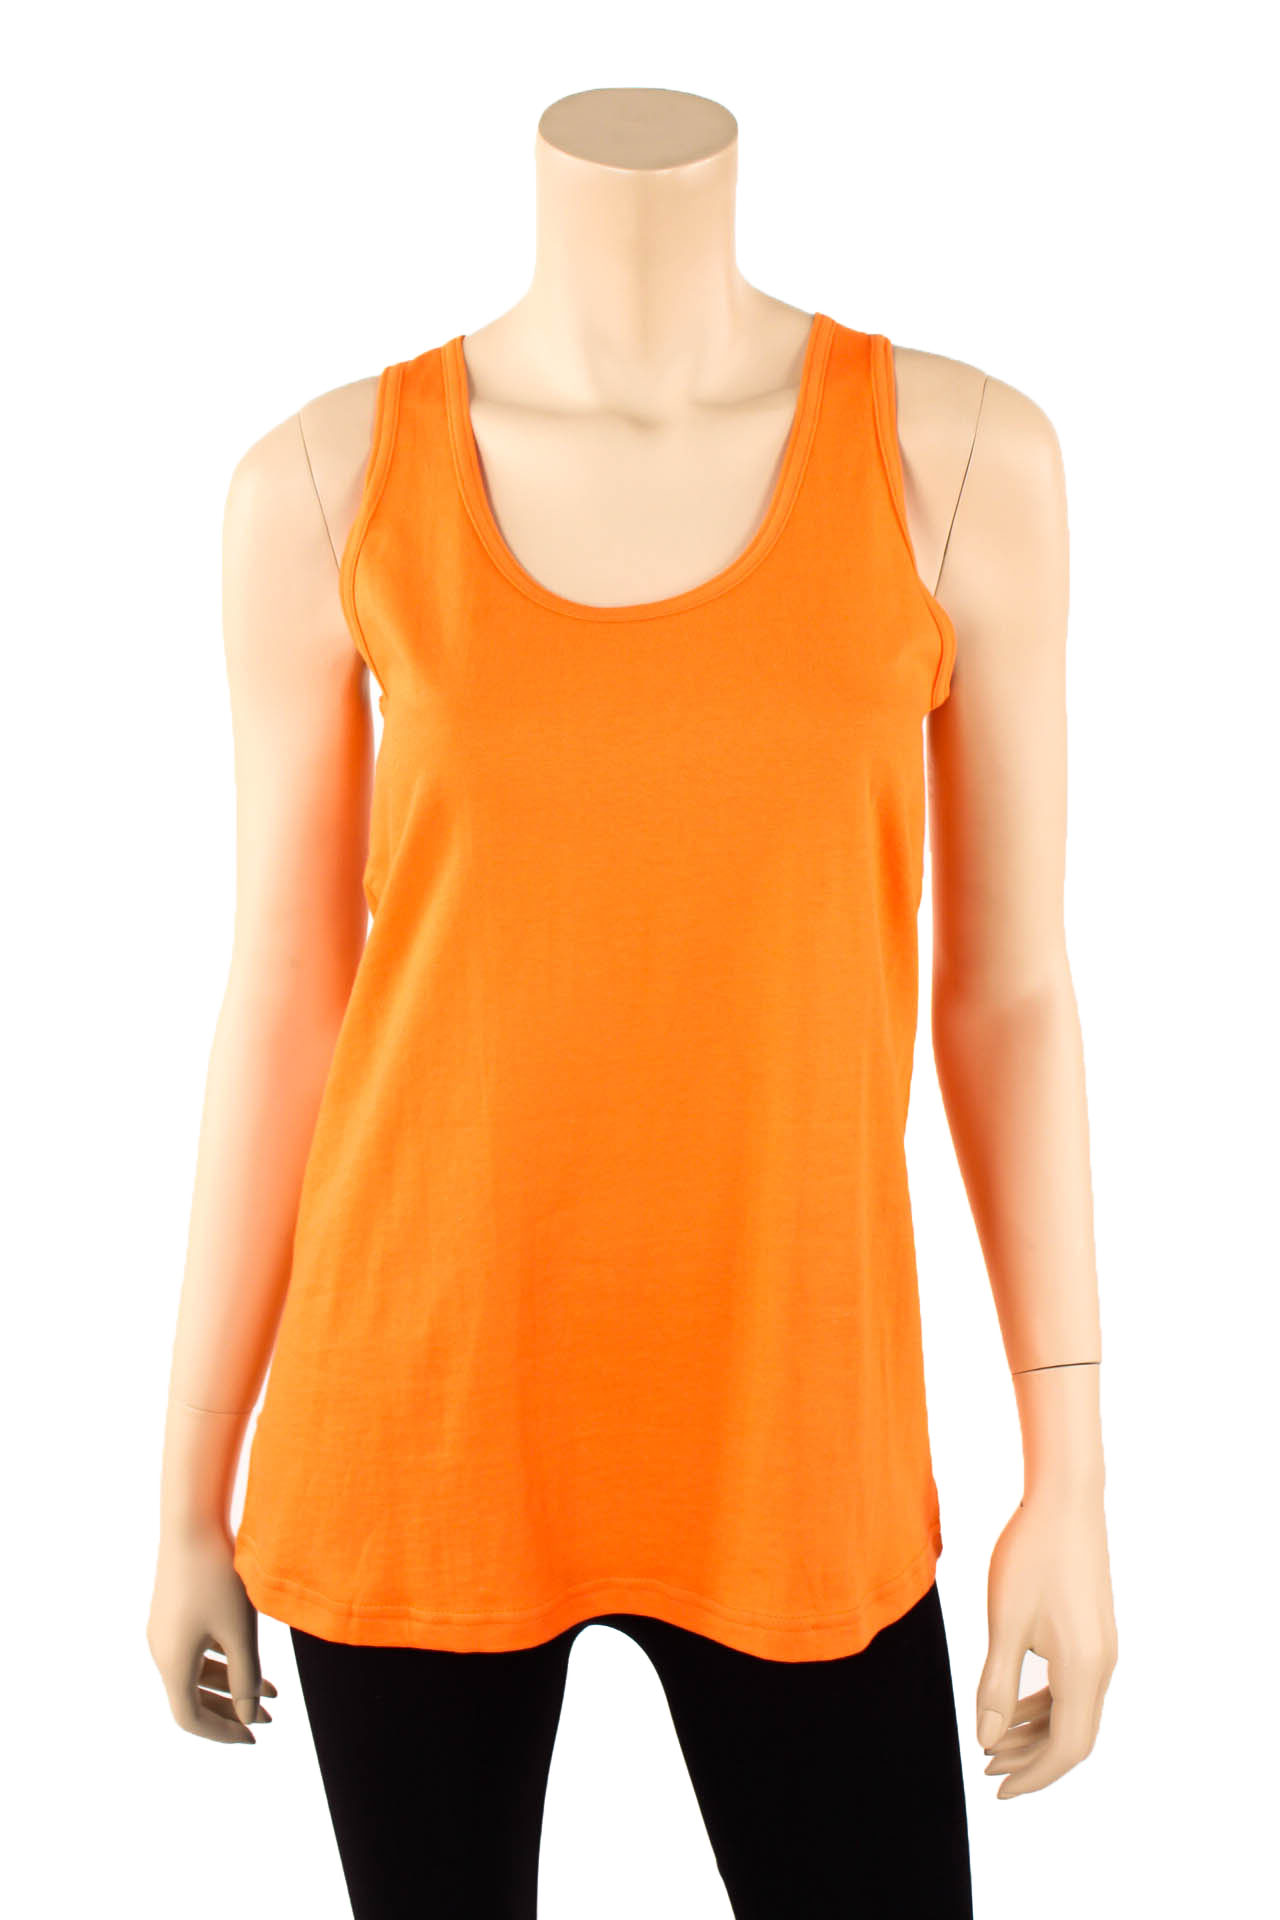 Tank Top Fashion Model New Tip Tumblr Girl Tumblr: Womens Loose Fit Tank Top 100% Cotton Relaxed Flowy Basic